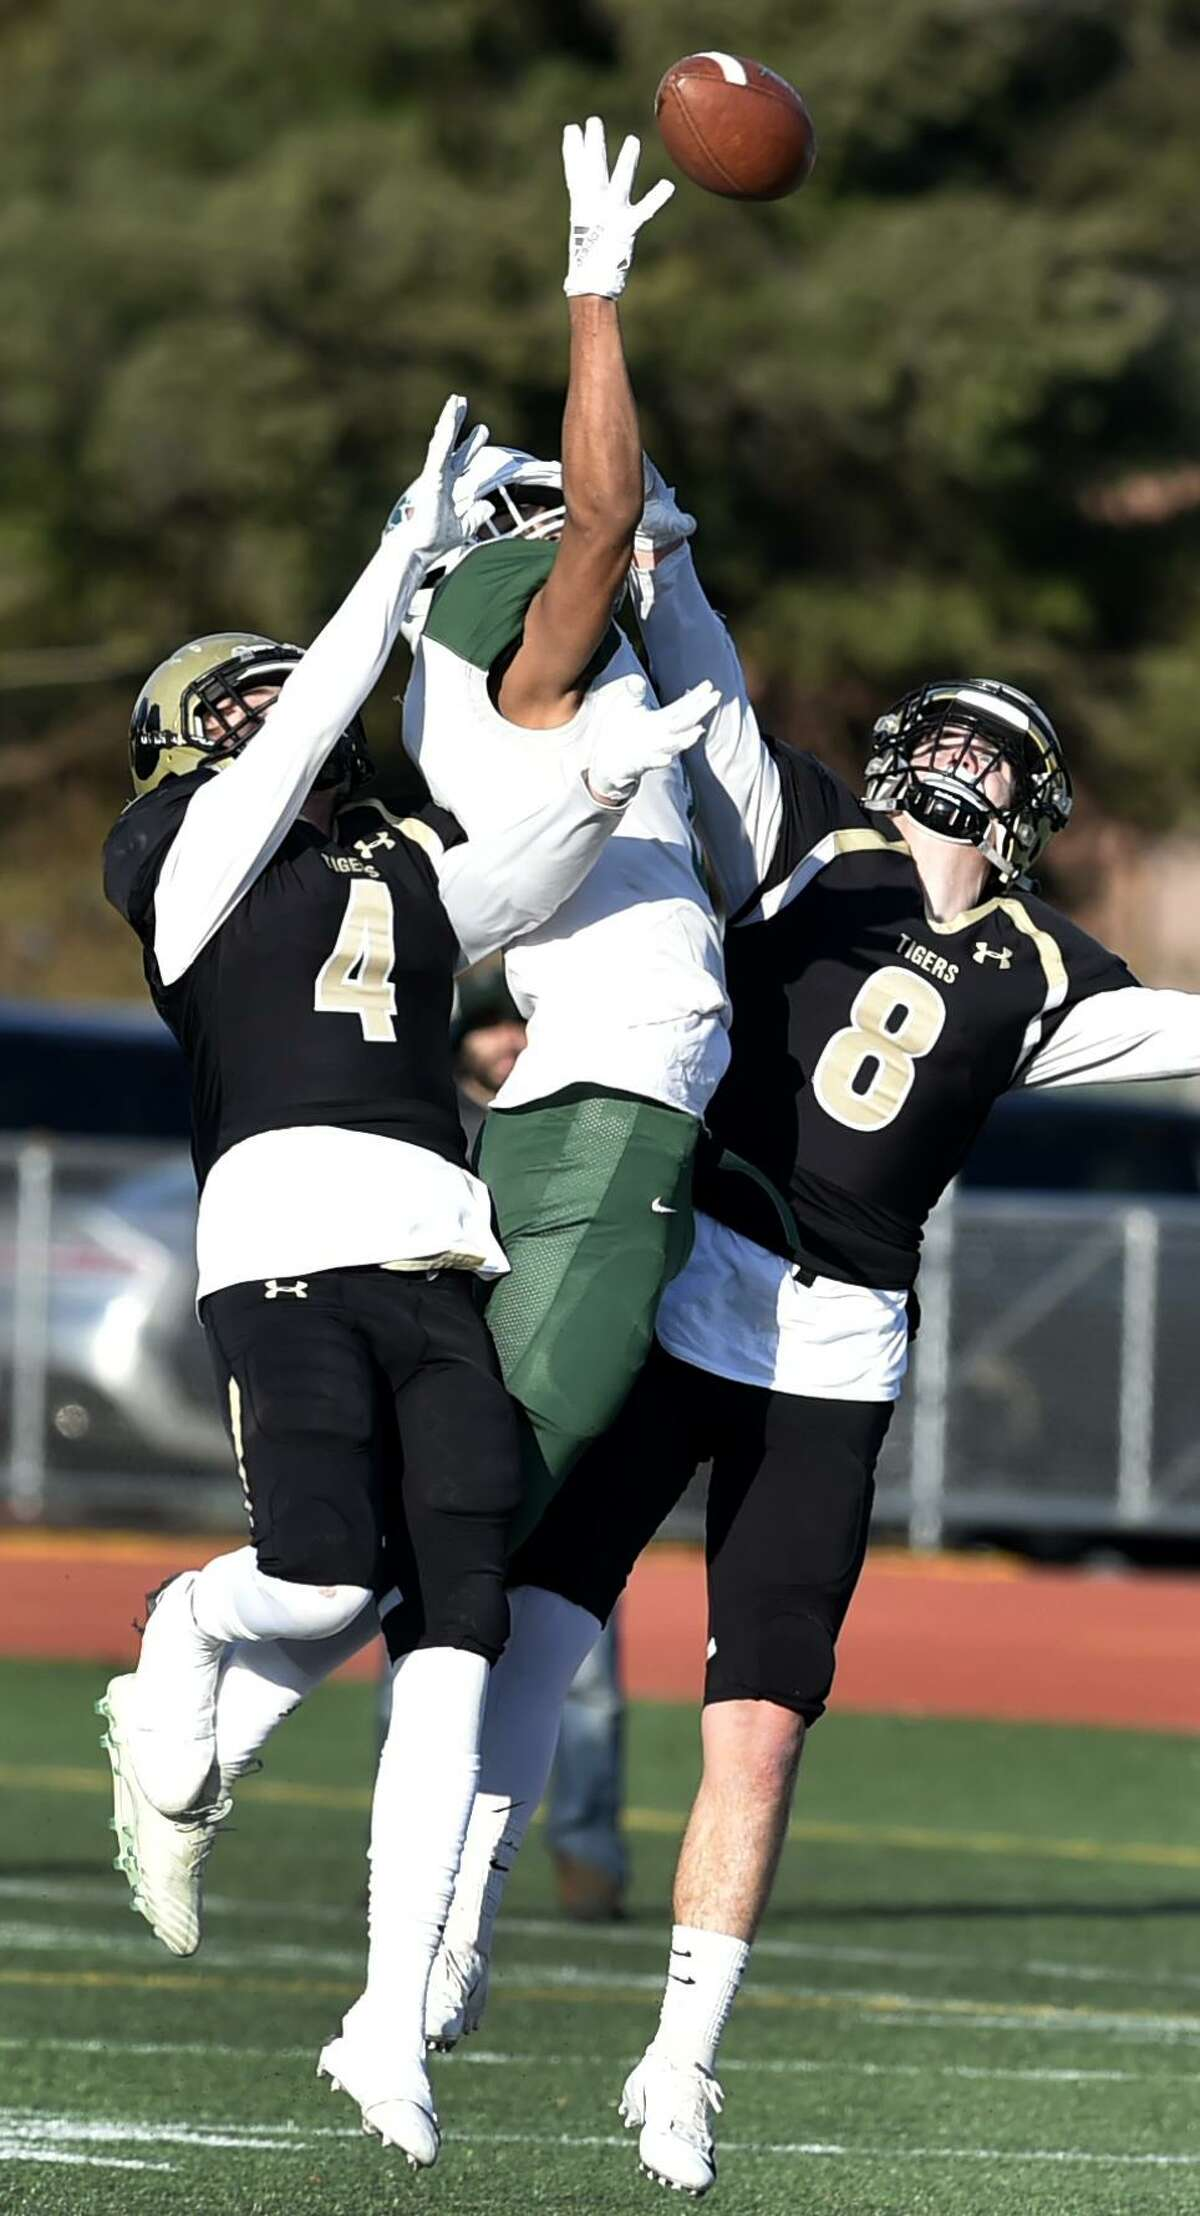 Hand's Ian Butler, right, intercepts a pass against Maloney's Victor Marquez, center as Hand's Thomas Ferrick assists on the play on Saturday.